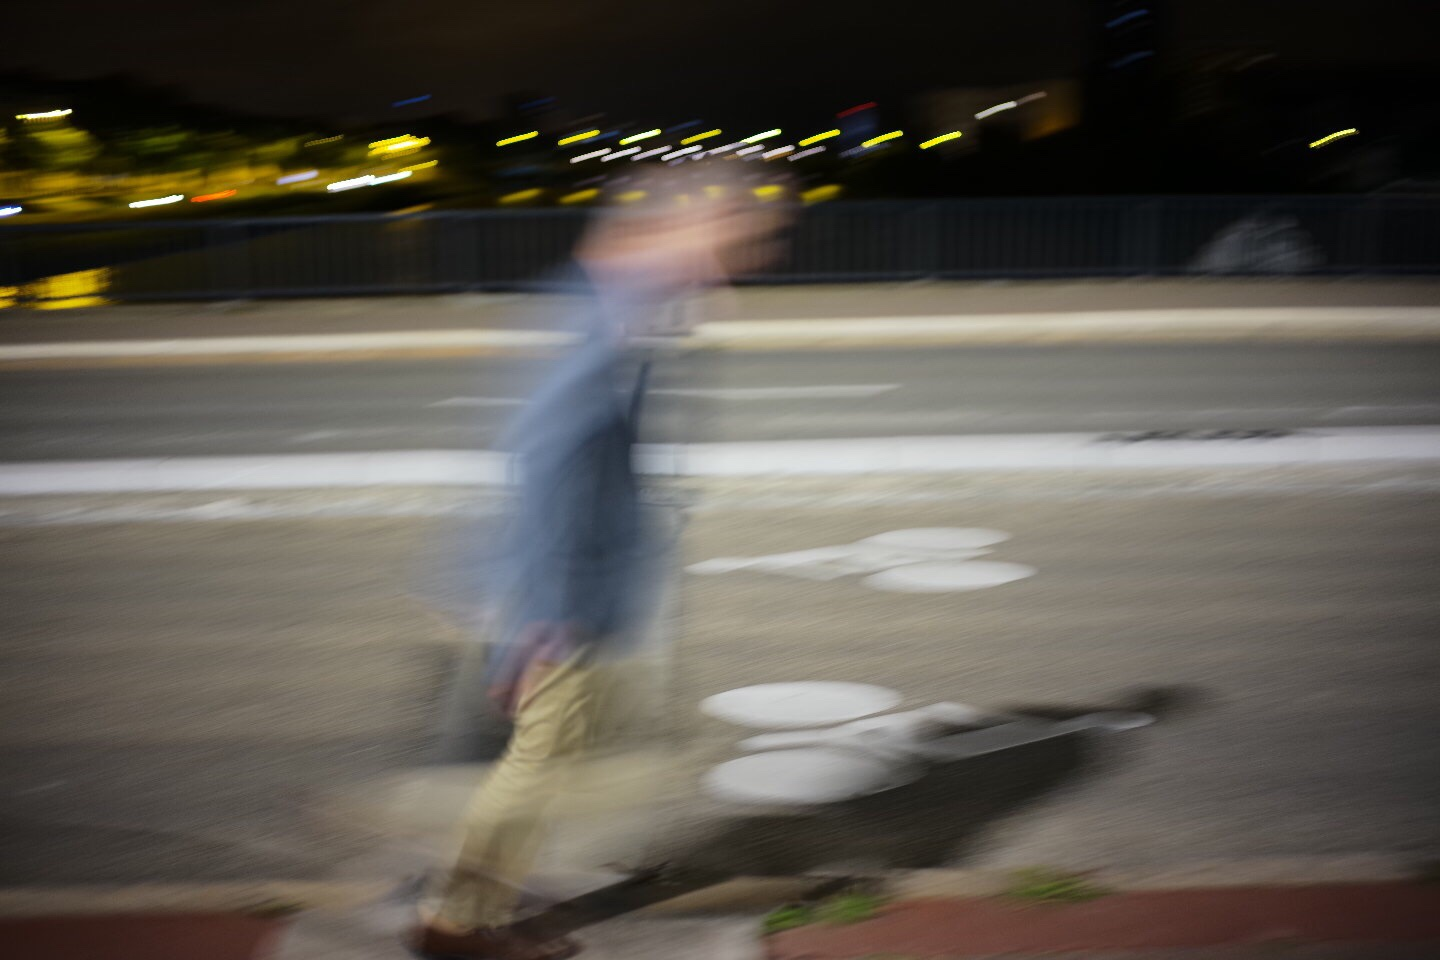 Man walking at night, Nantes - Leica M10, 35mm summilux